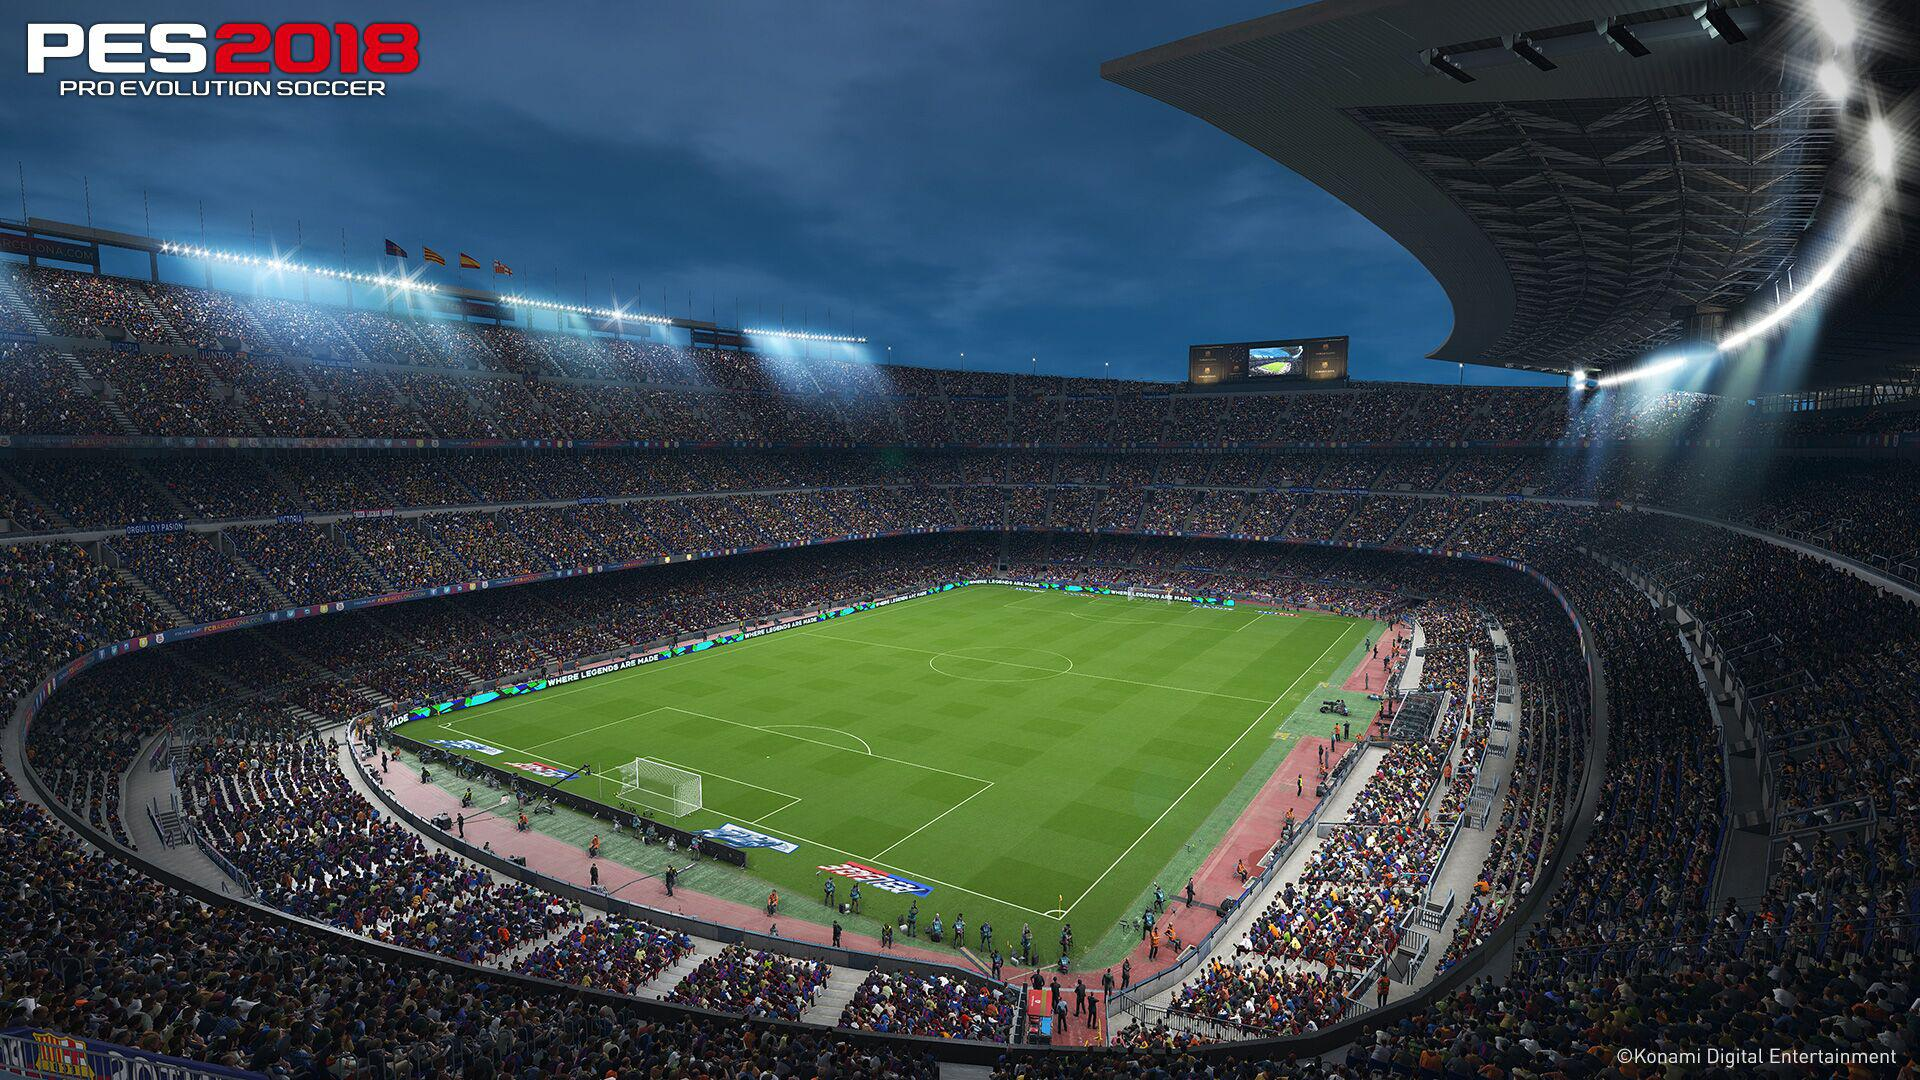 PES 2018 will have its work cut out as it launches just a few days before FIFA 18